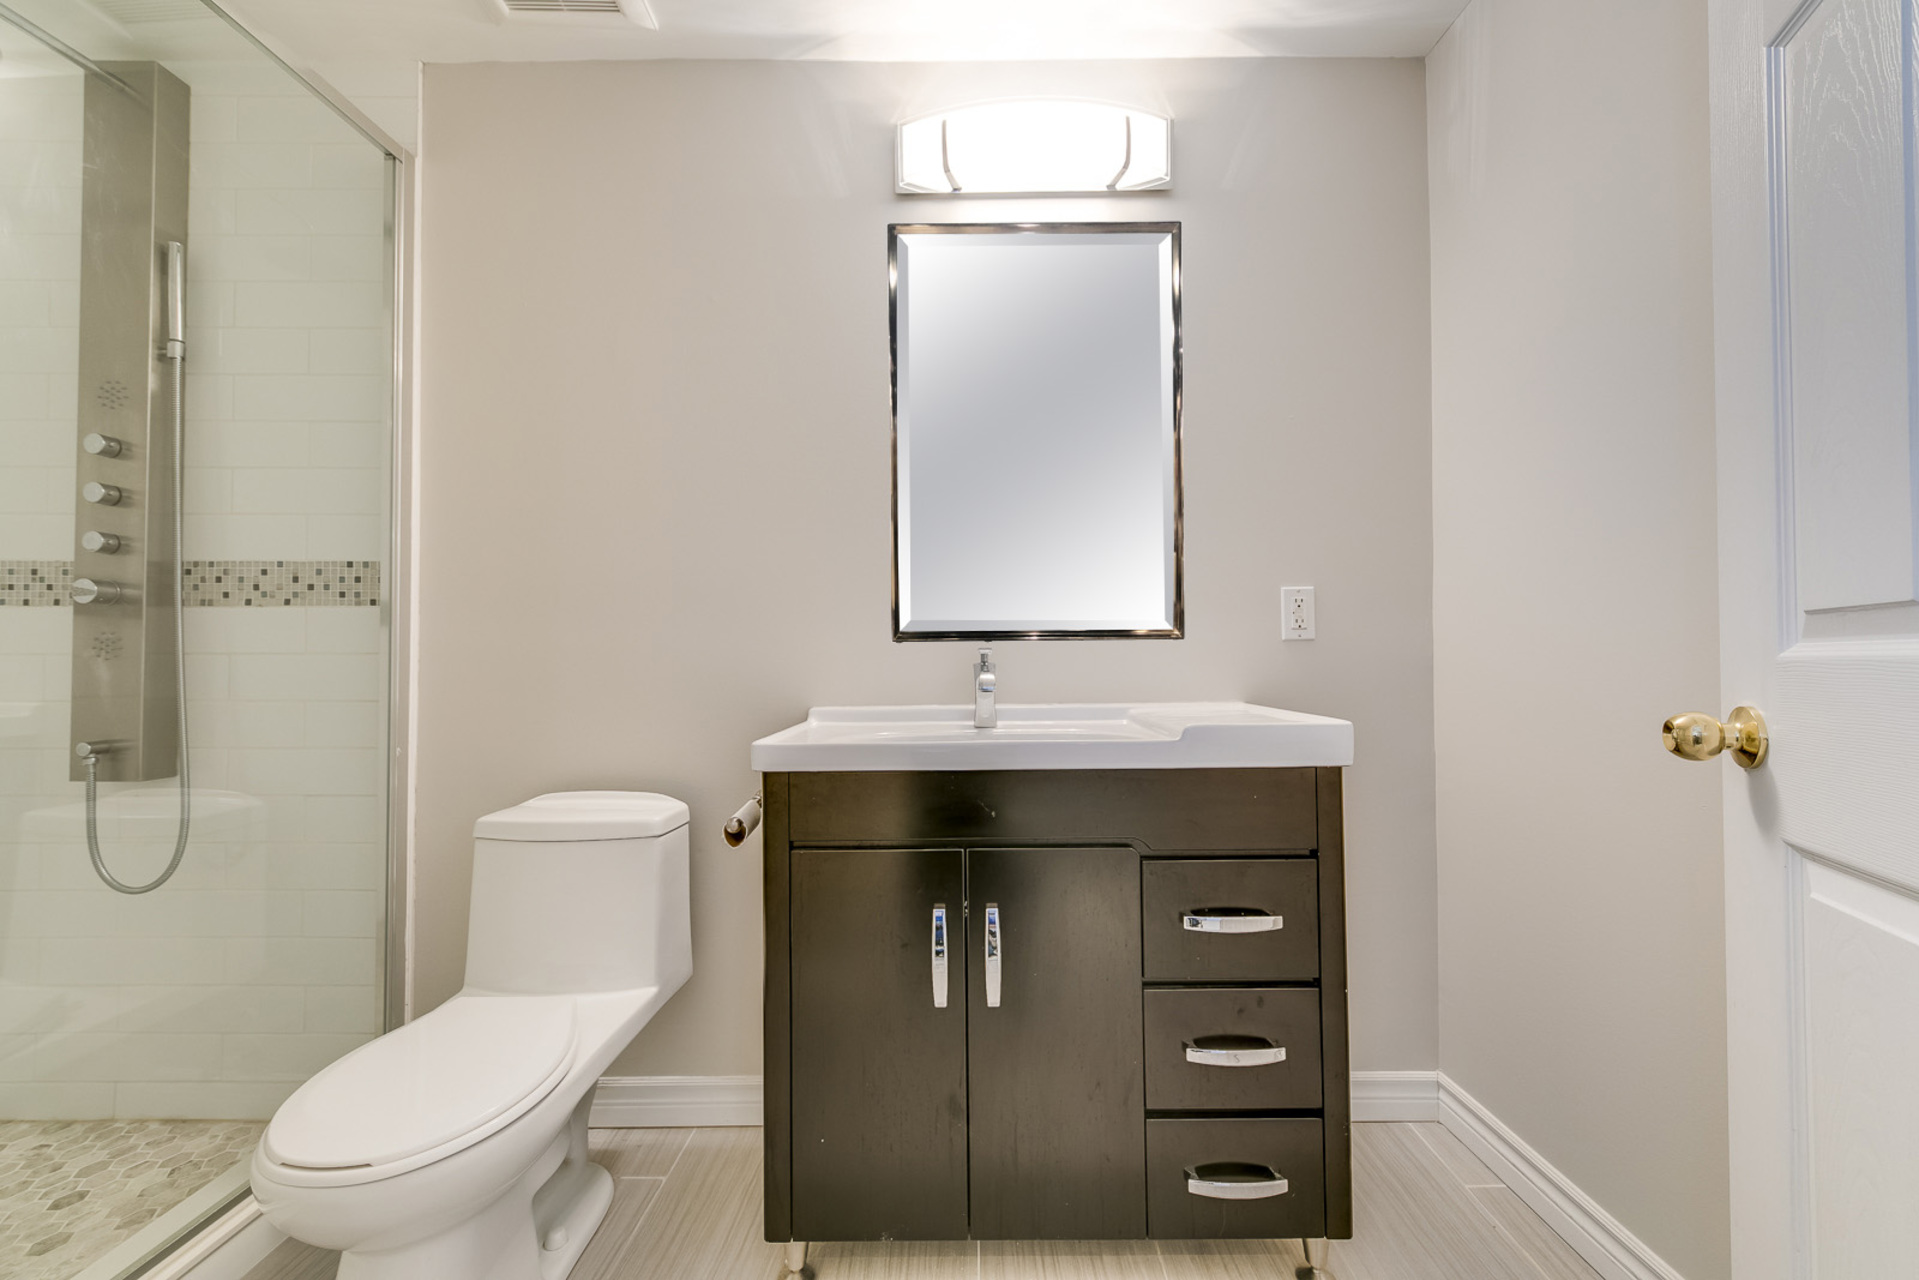 mls-56-with-mirror at 1509 Clearview Drive, Clearview, Oakville